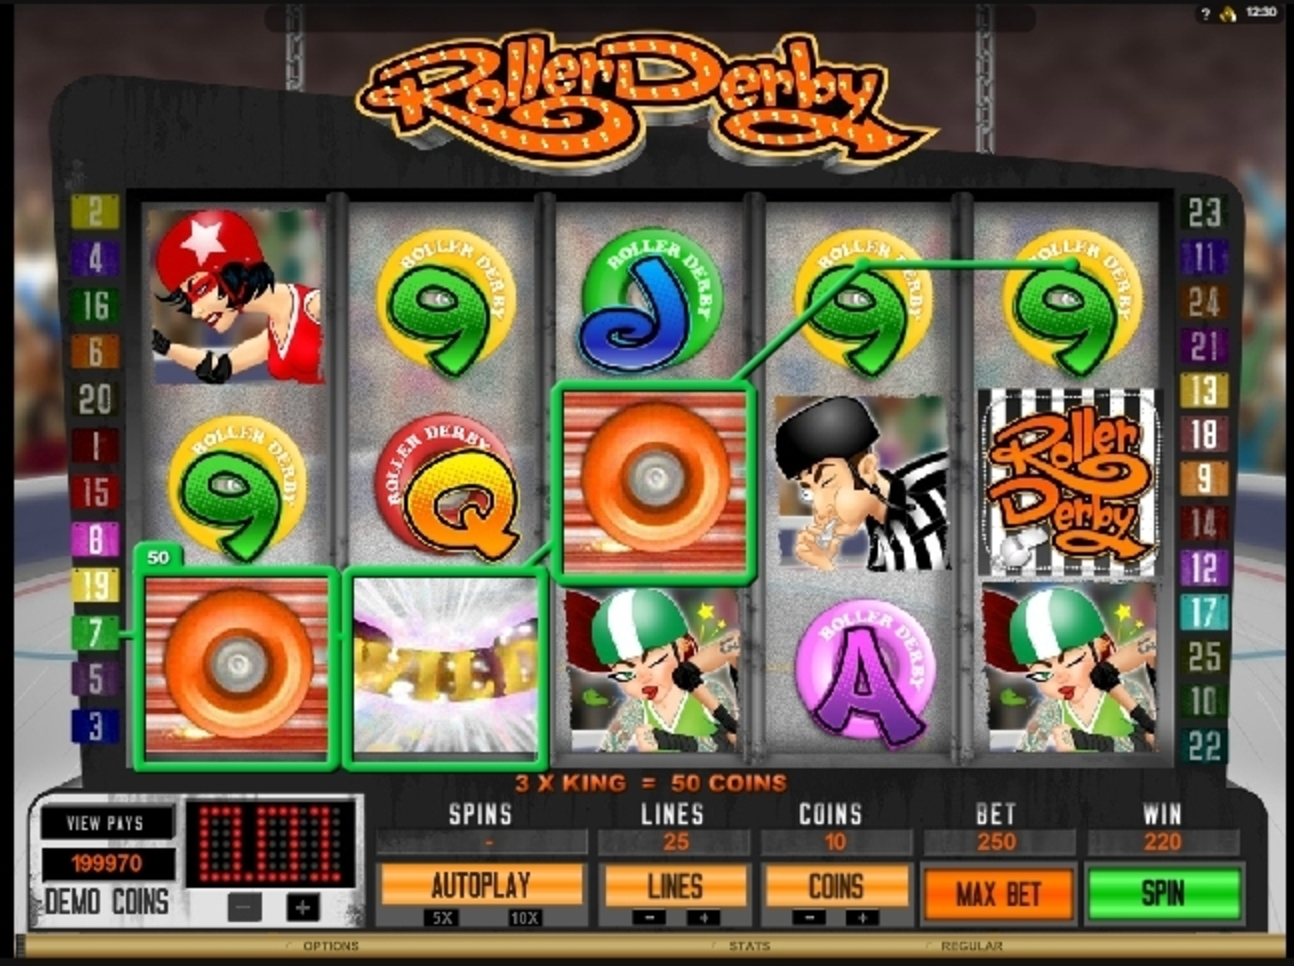 Win Money in Roller Derby Free Slot Game by Microgaming